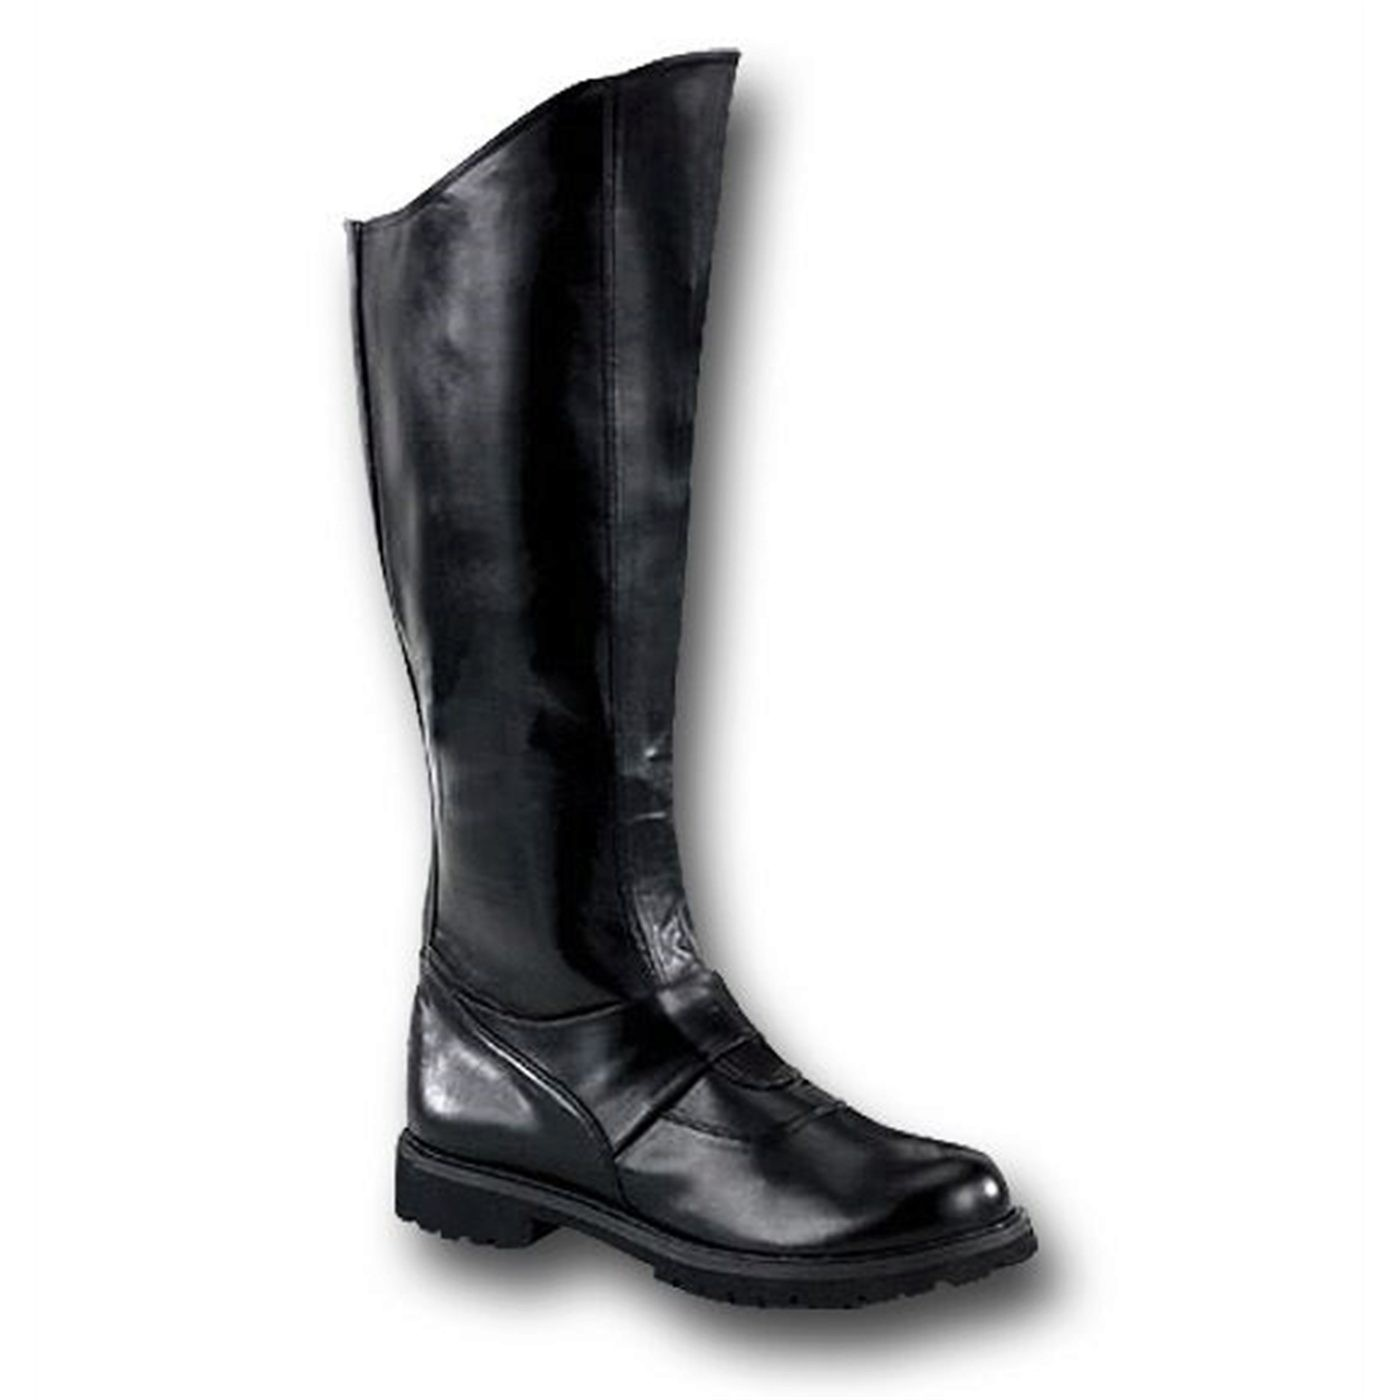 Black Boots Gotham Style For Men